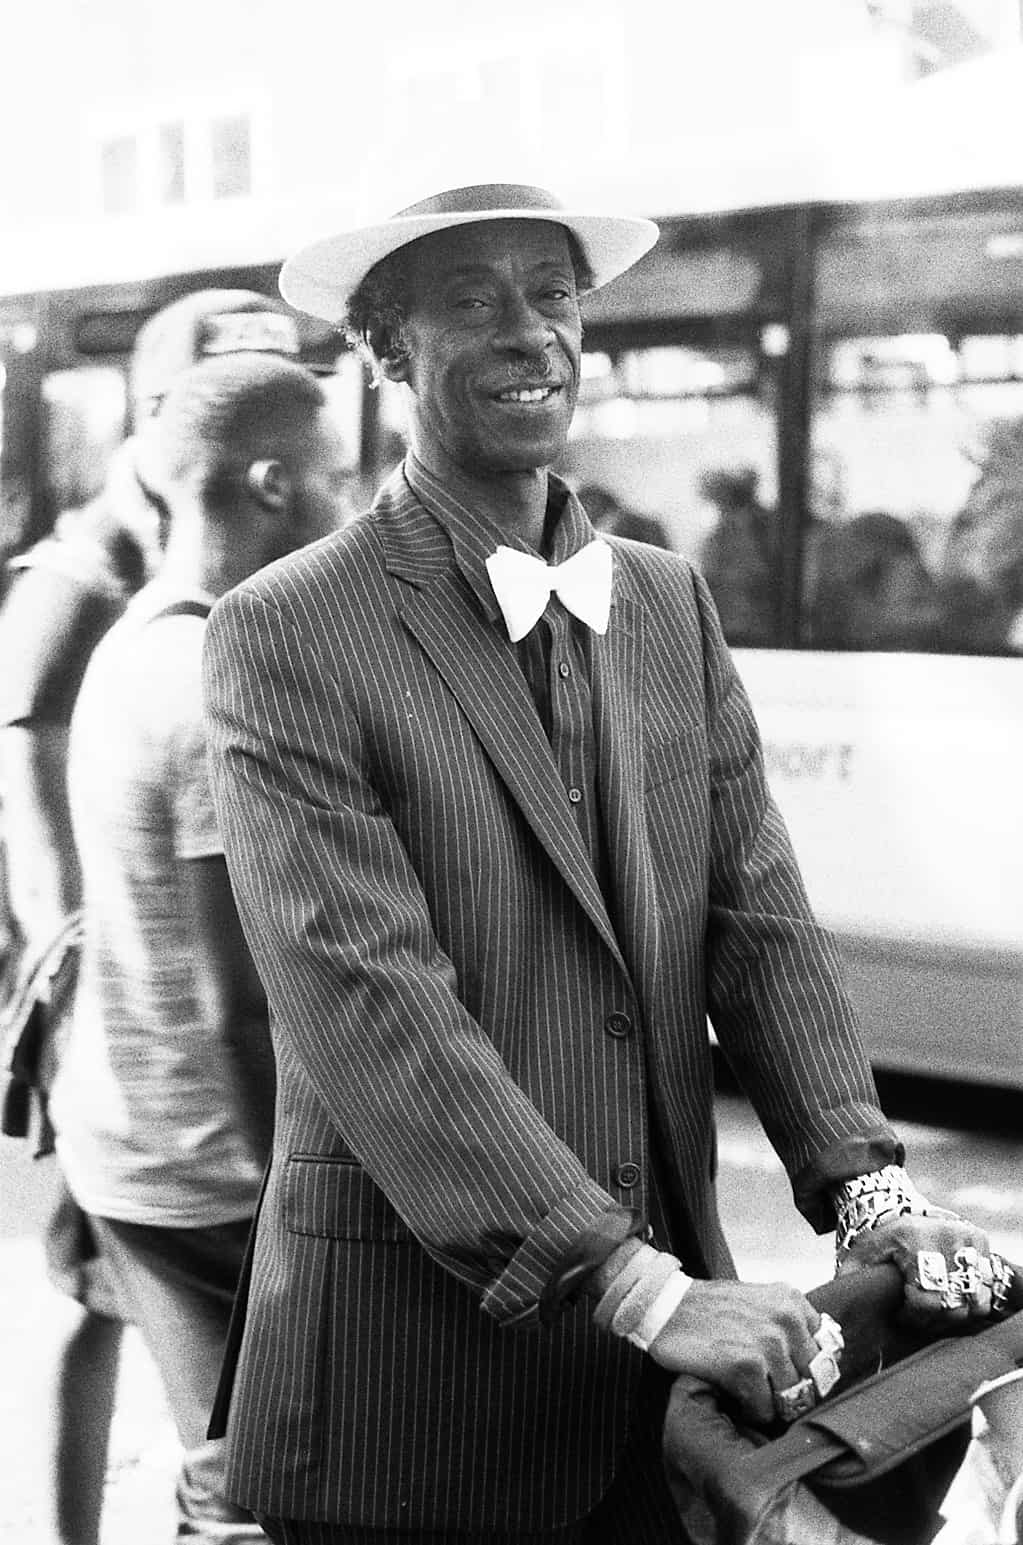 Photography by Justine Roland-Cal - Father Style Hackney Carnival